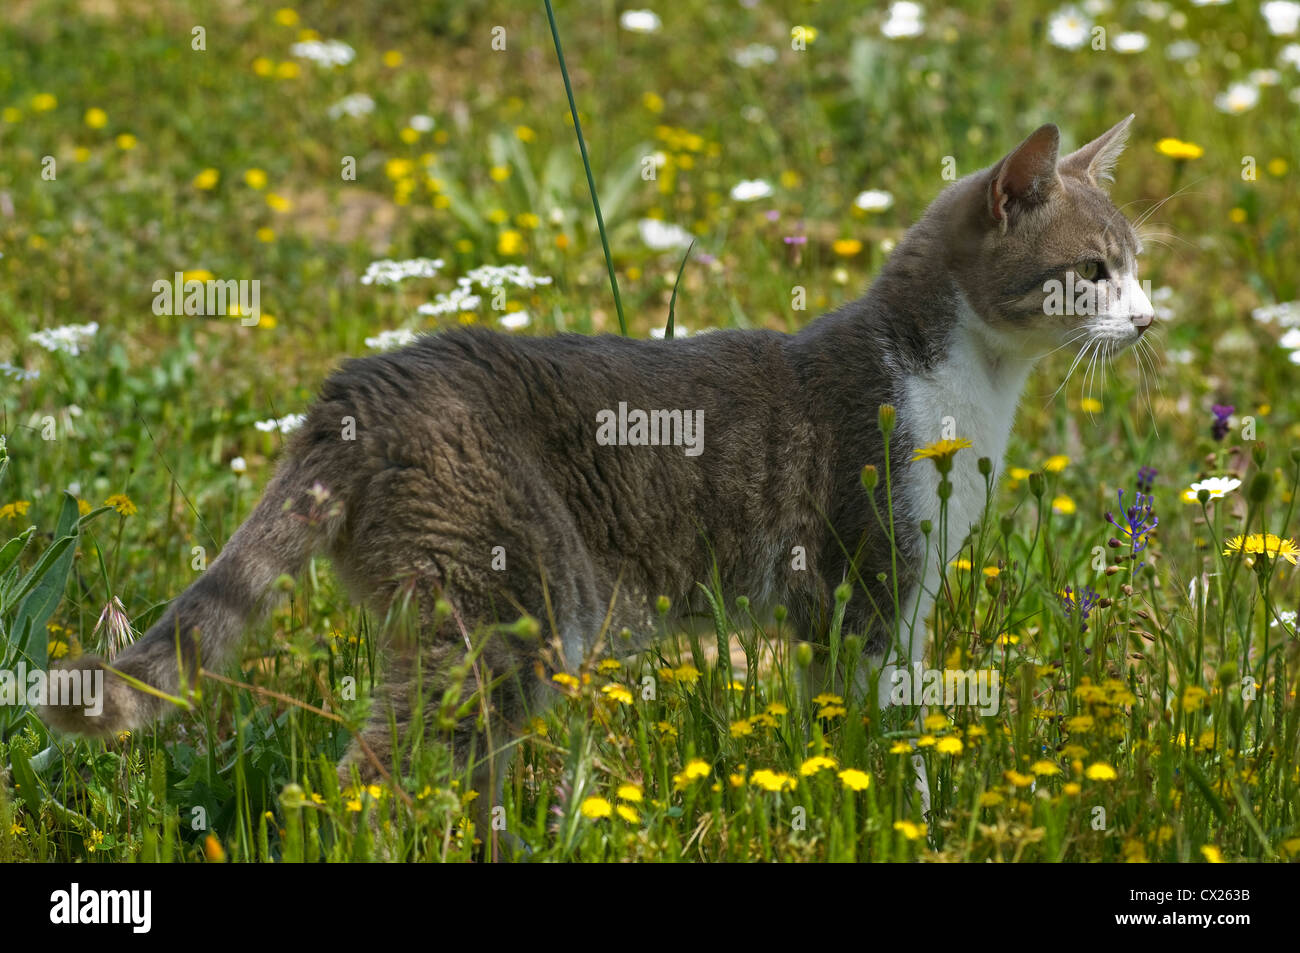 Young cat standing in flowering meadow observing something attentively - Stock Image